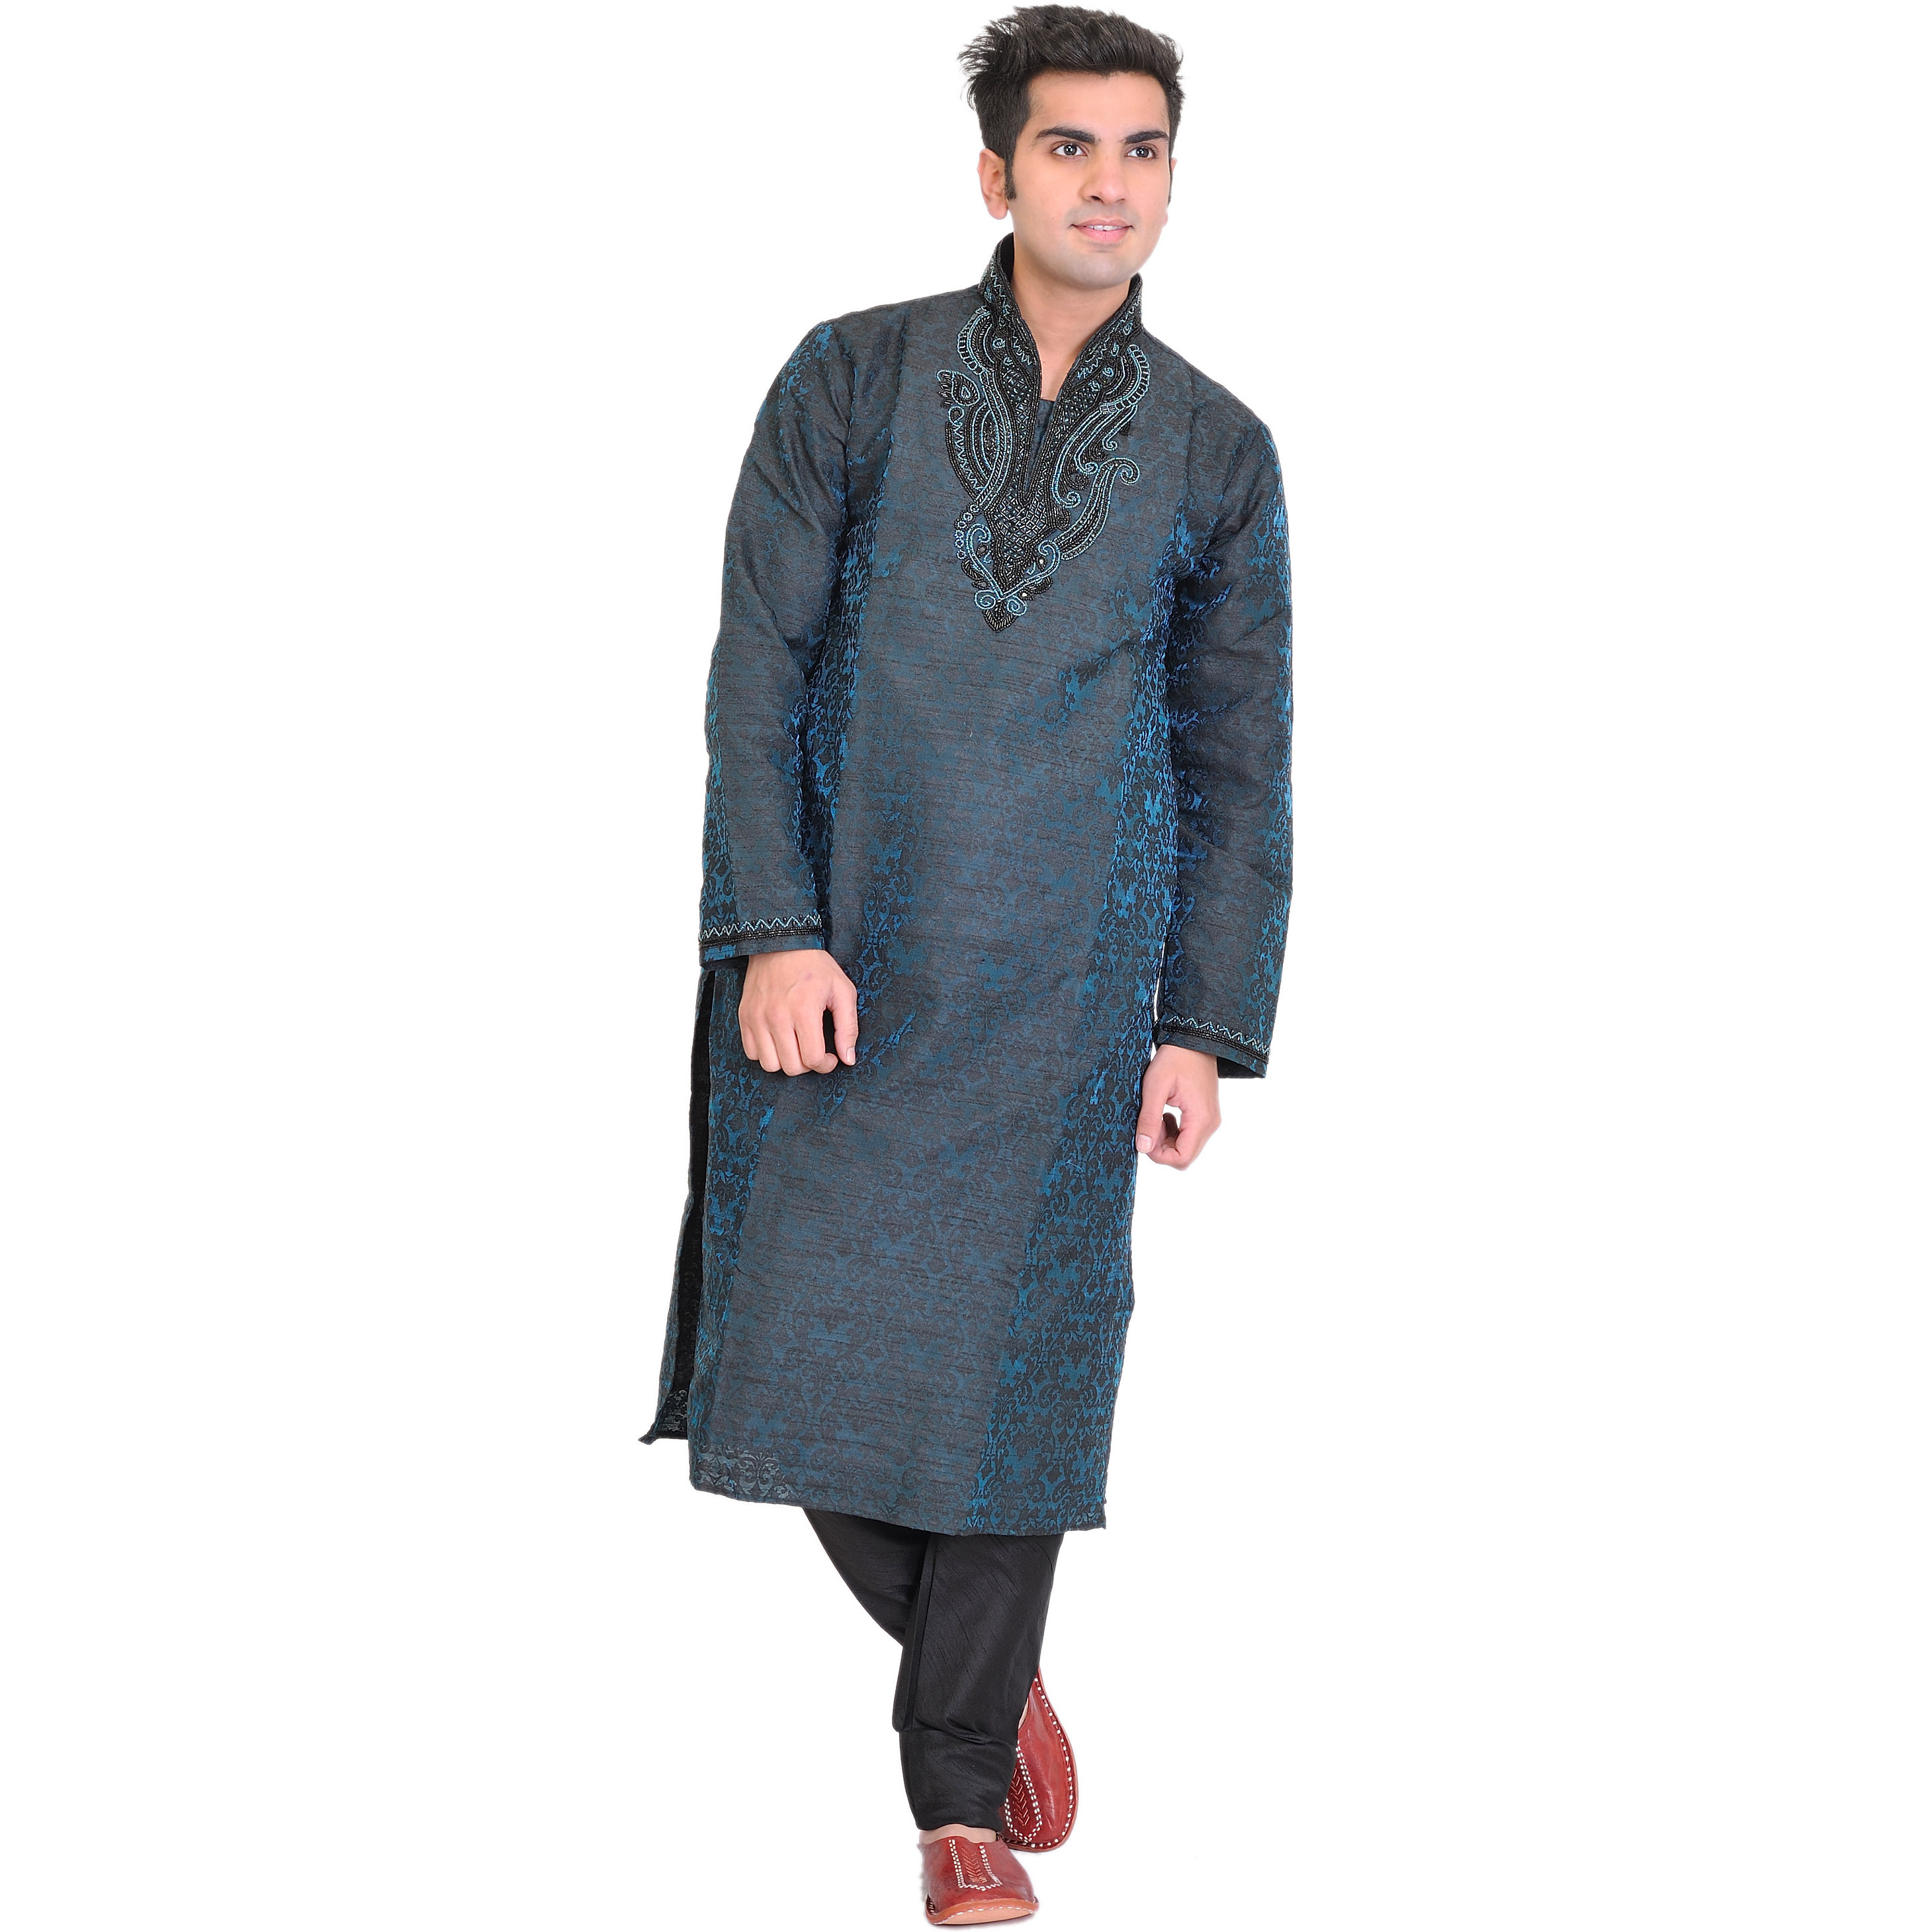 Coral-Blue Wedding Kurta Pajama Set with Embroidered Beads on Neck and Self-Weave